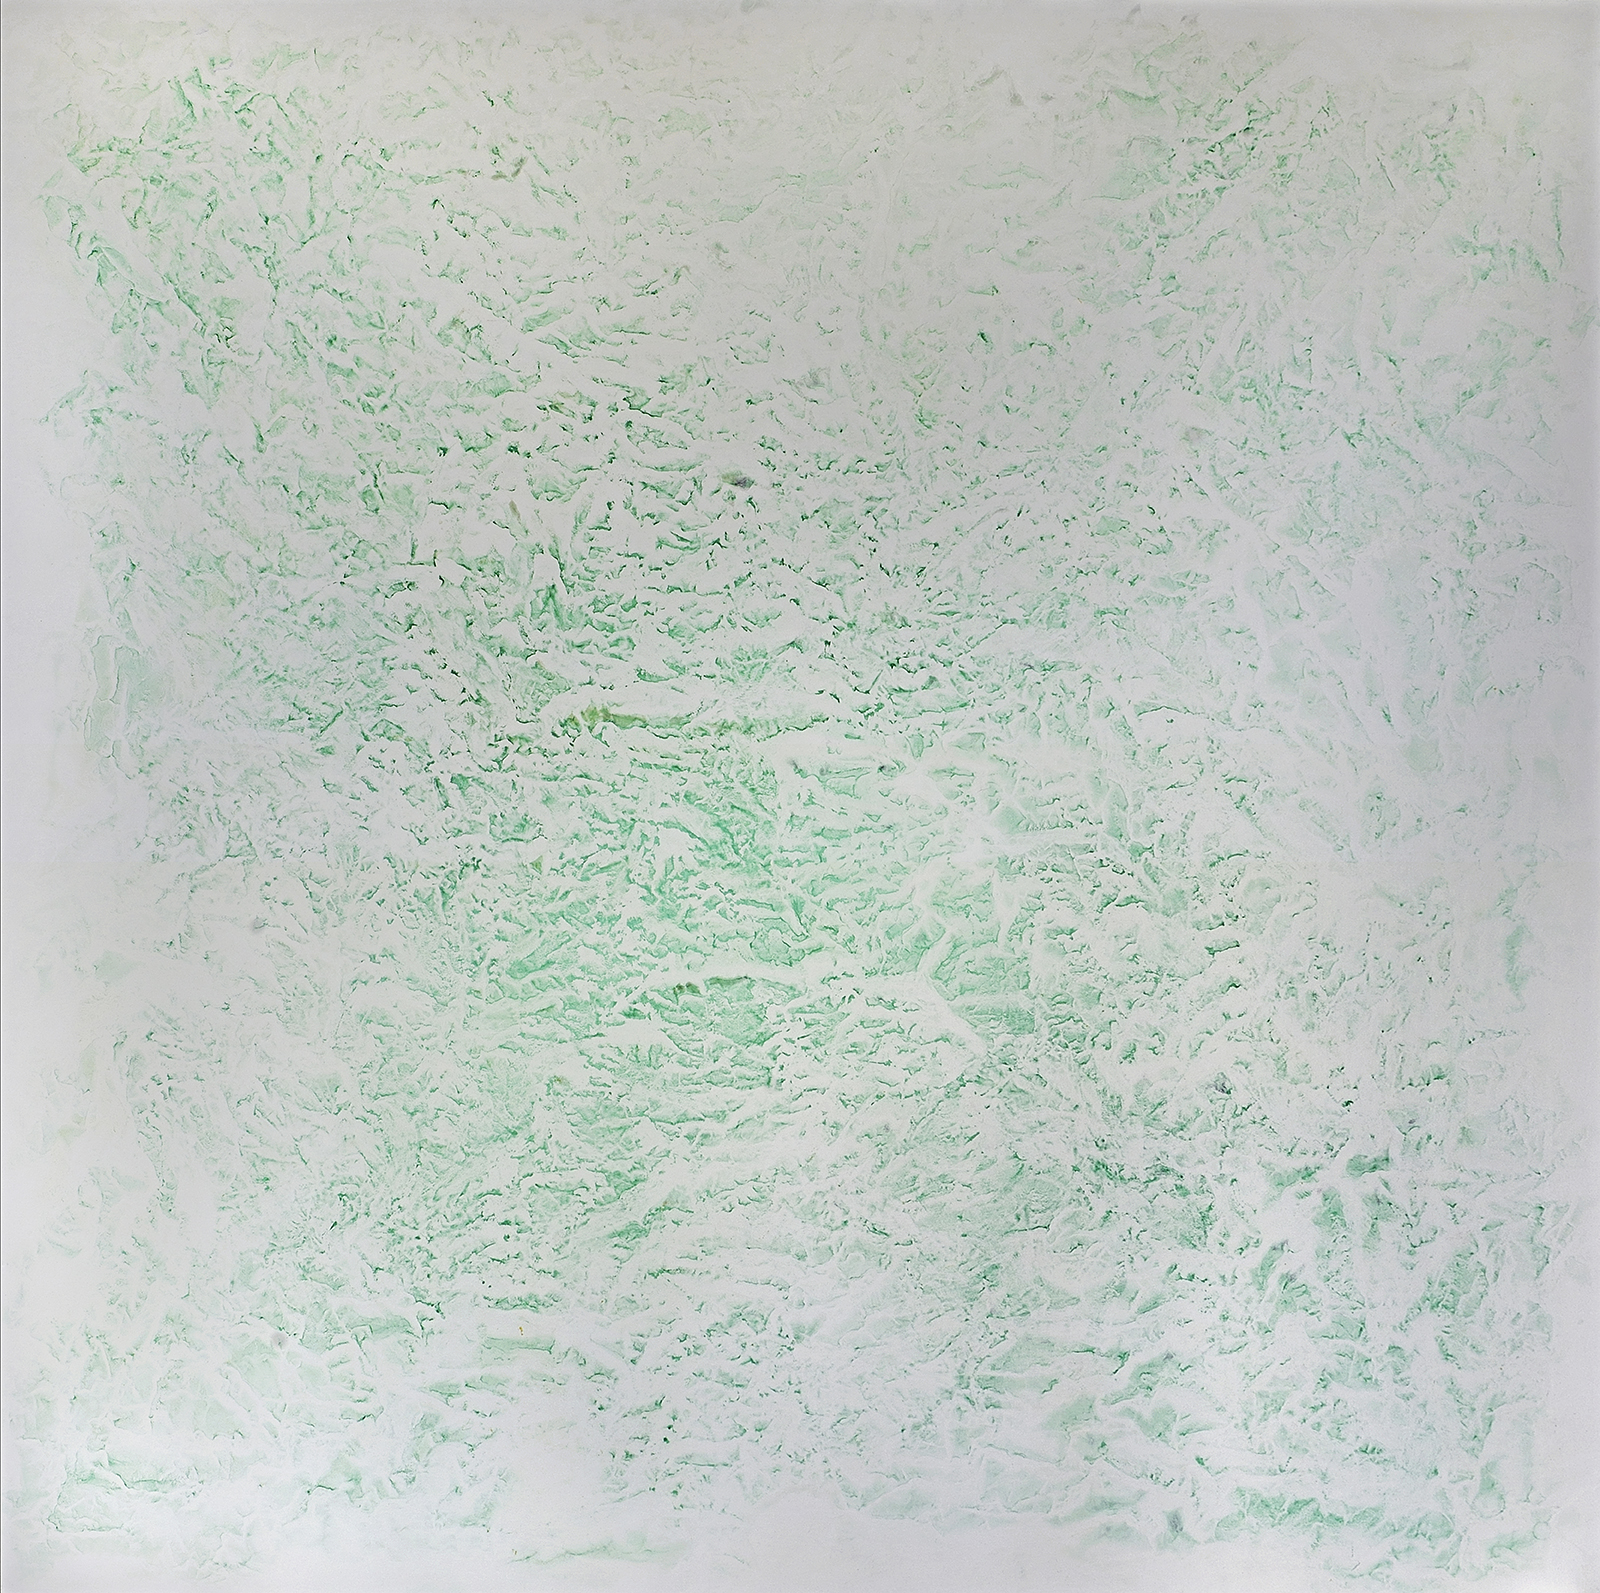 2017 Walking by the Yangtse #1357 pigment, oil, alkyd on canvas (Malachite) 78 x 78 inches 198.12 x 198.12 cm © Vicky Colombet, all rights reserved.